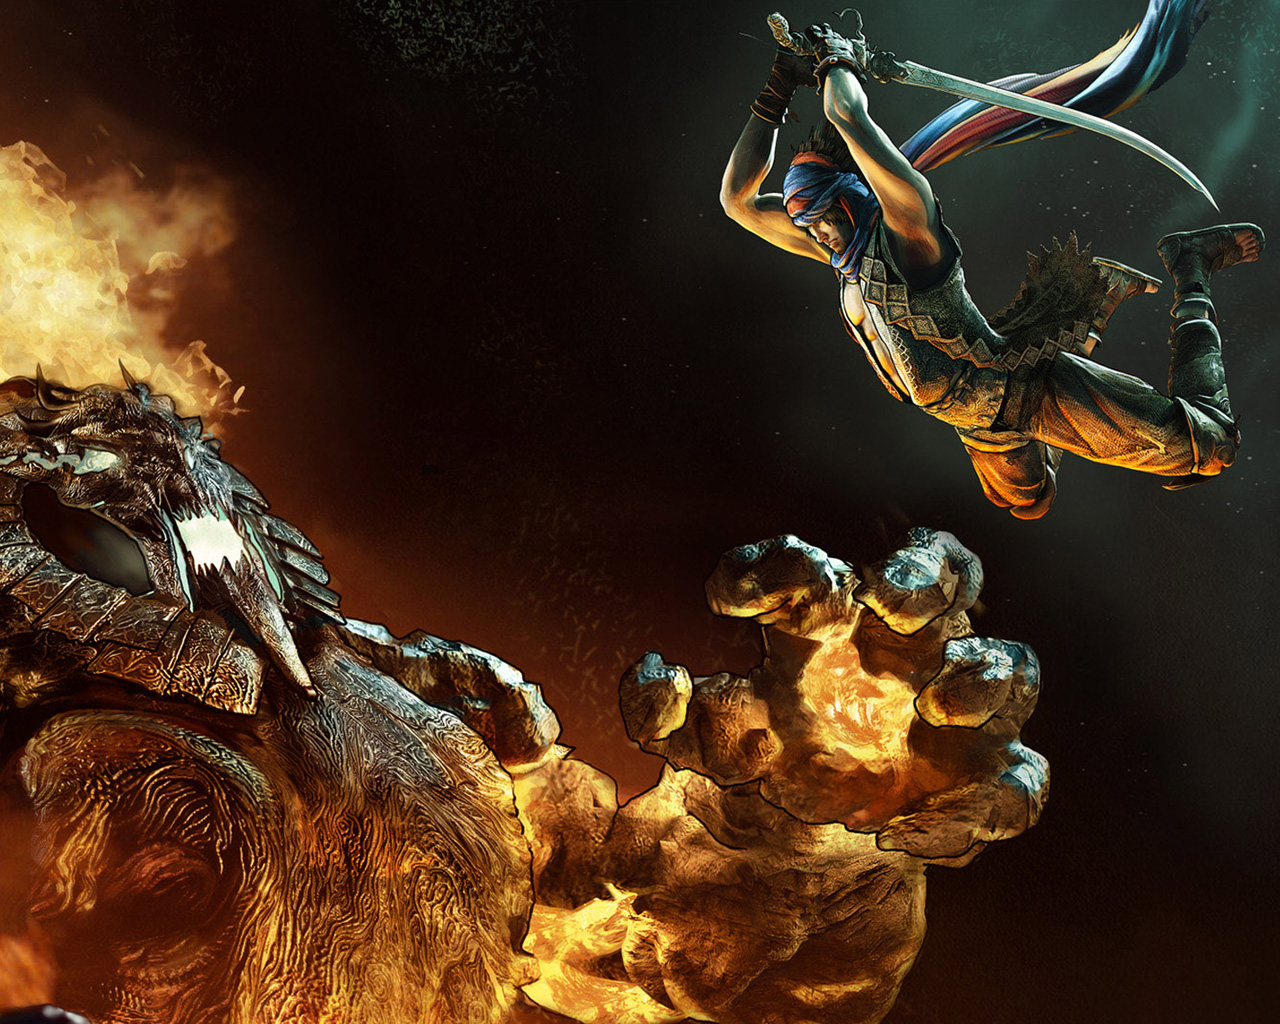 Free Prince of Persia Wallpaper in 1280x1024